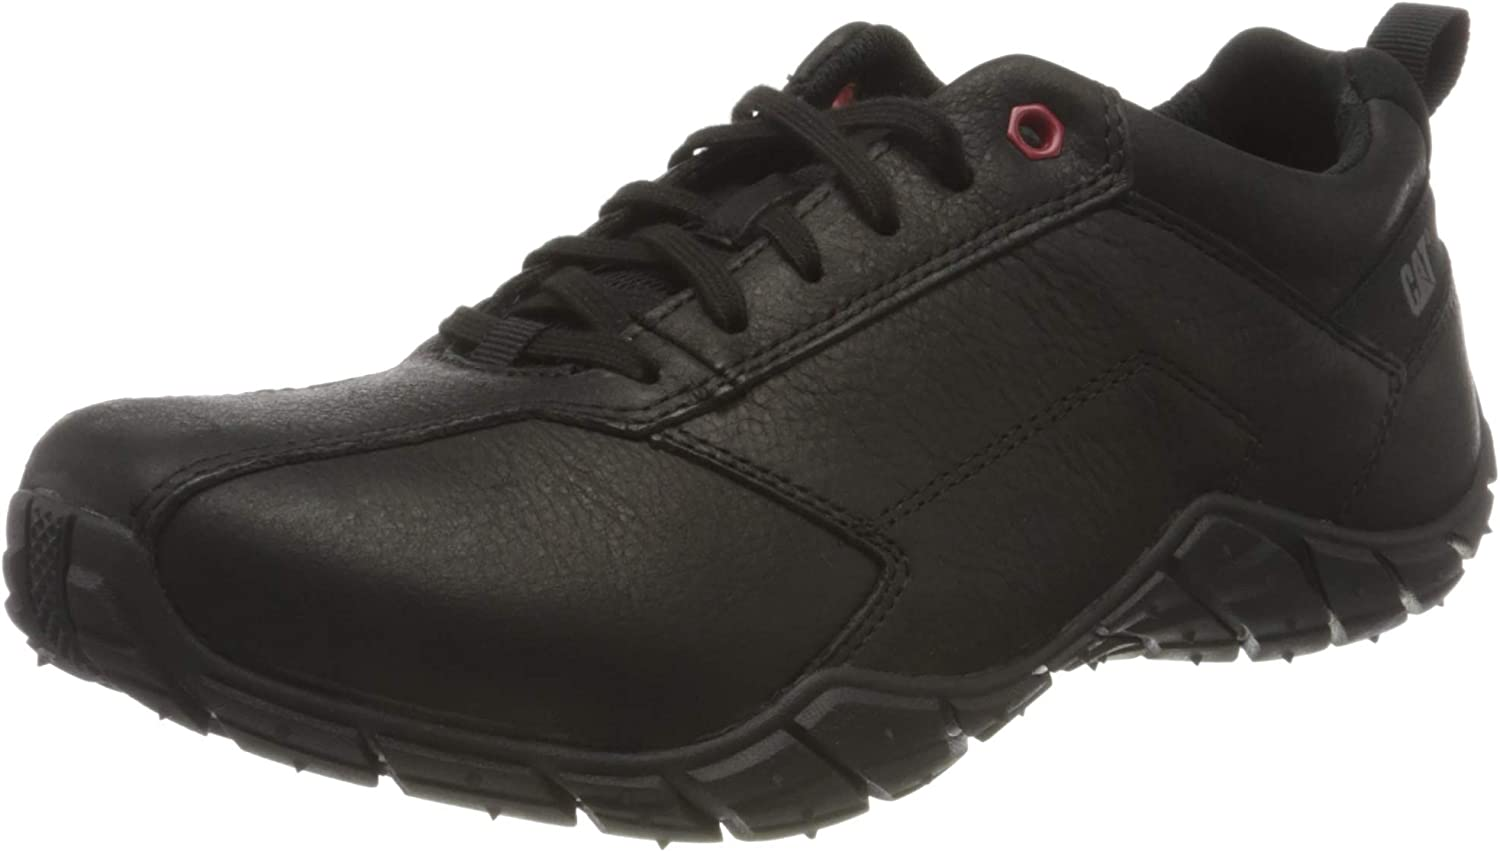 Caterpillar Men's Max 82% Complete Free Shipping OFF Trekking Shoes